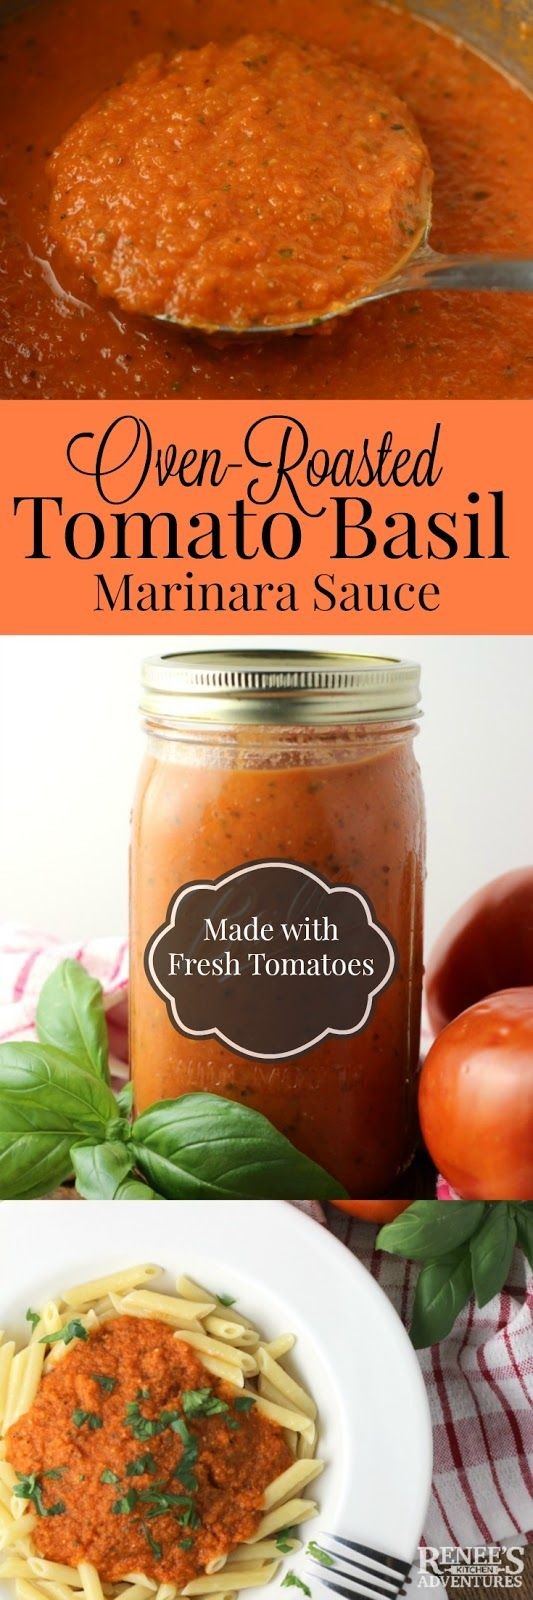 Oven-Roasted Tomato Basil Marinara Sauce | Renee's Kitchen Adventures #SundaySupper easy recipe for fresh tomatoes